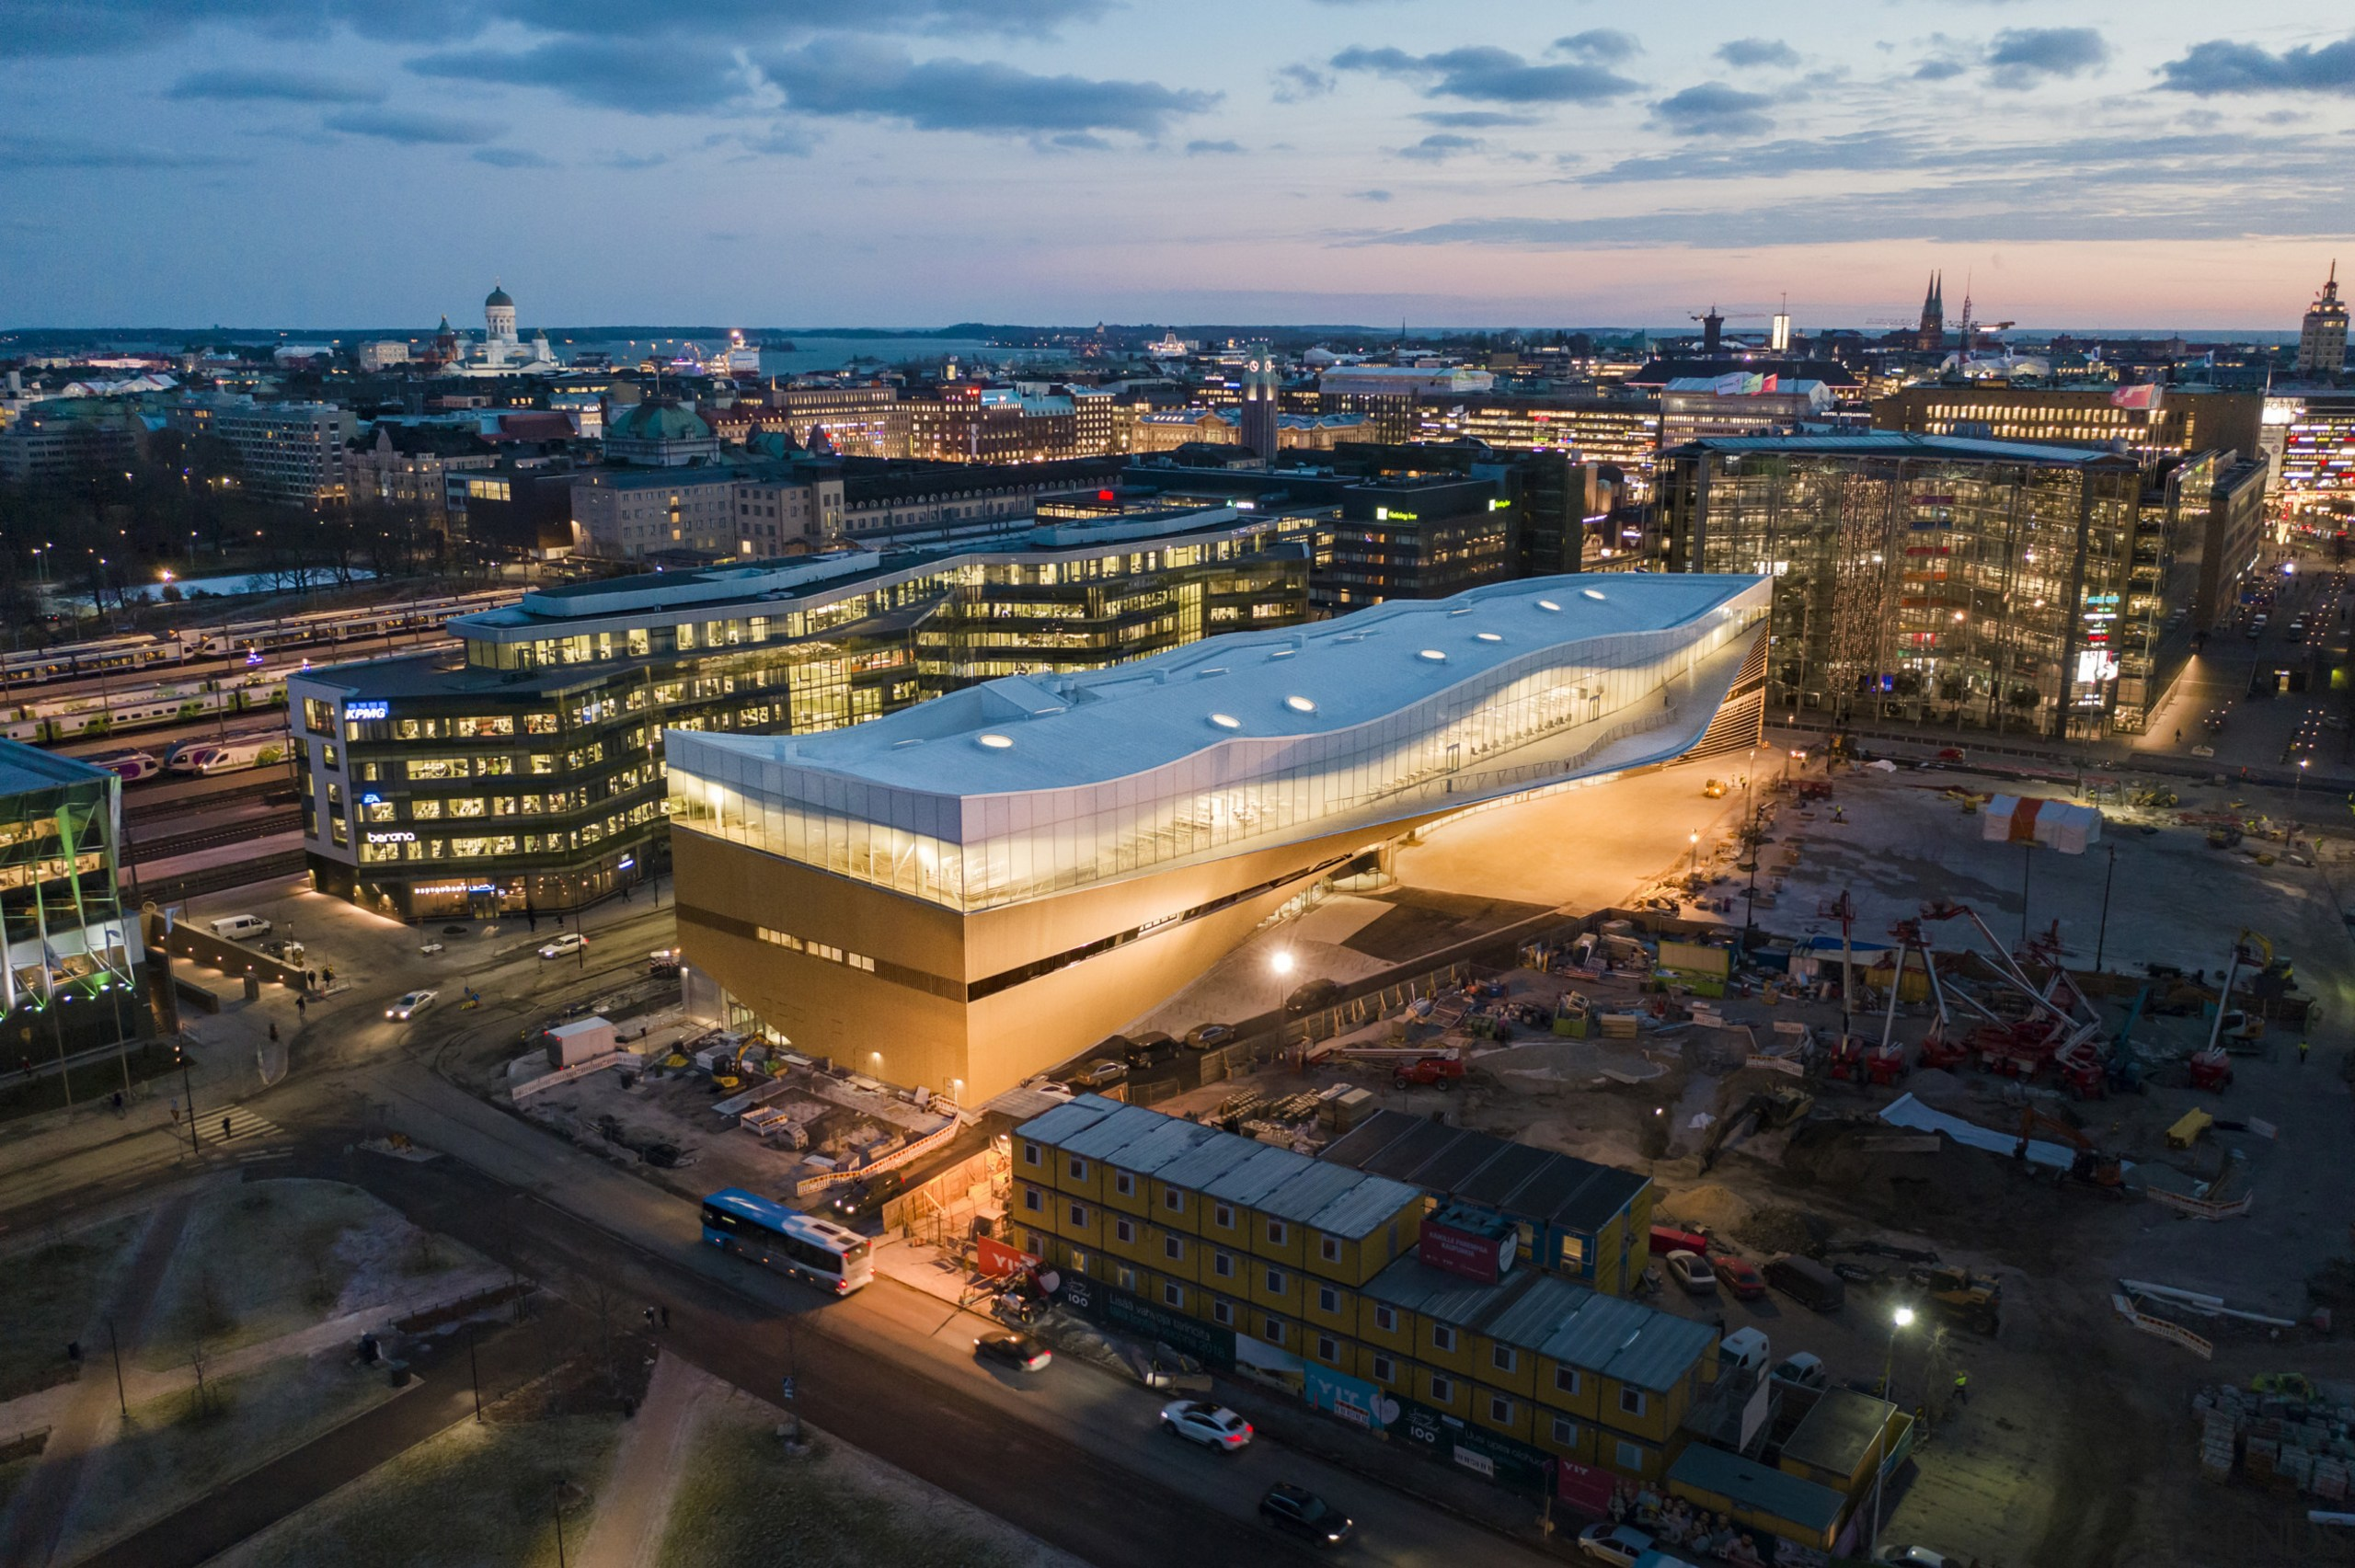 The Helsinki library at night shows off it aerial photography, architecture, arena, bird's-eye view, building, city, cityscape, downtown, human settlement, metropolis, metropolitan area, mixed-use, night, photography, roof, sky, sport venue, transport, urban area, black